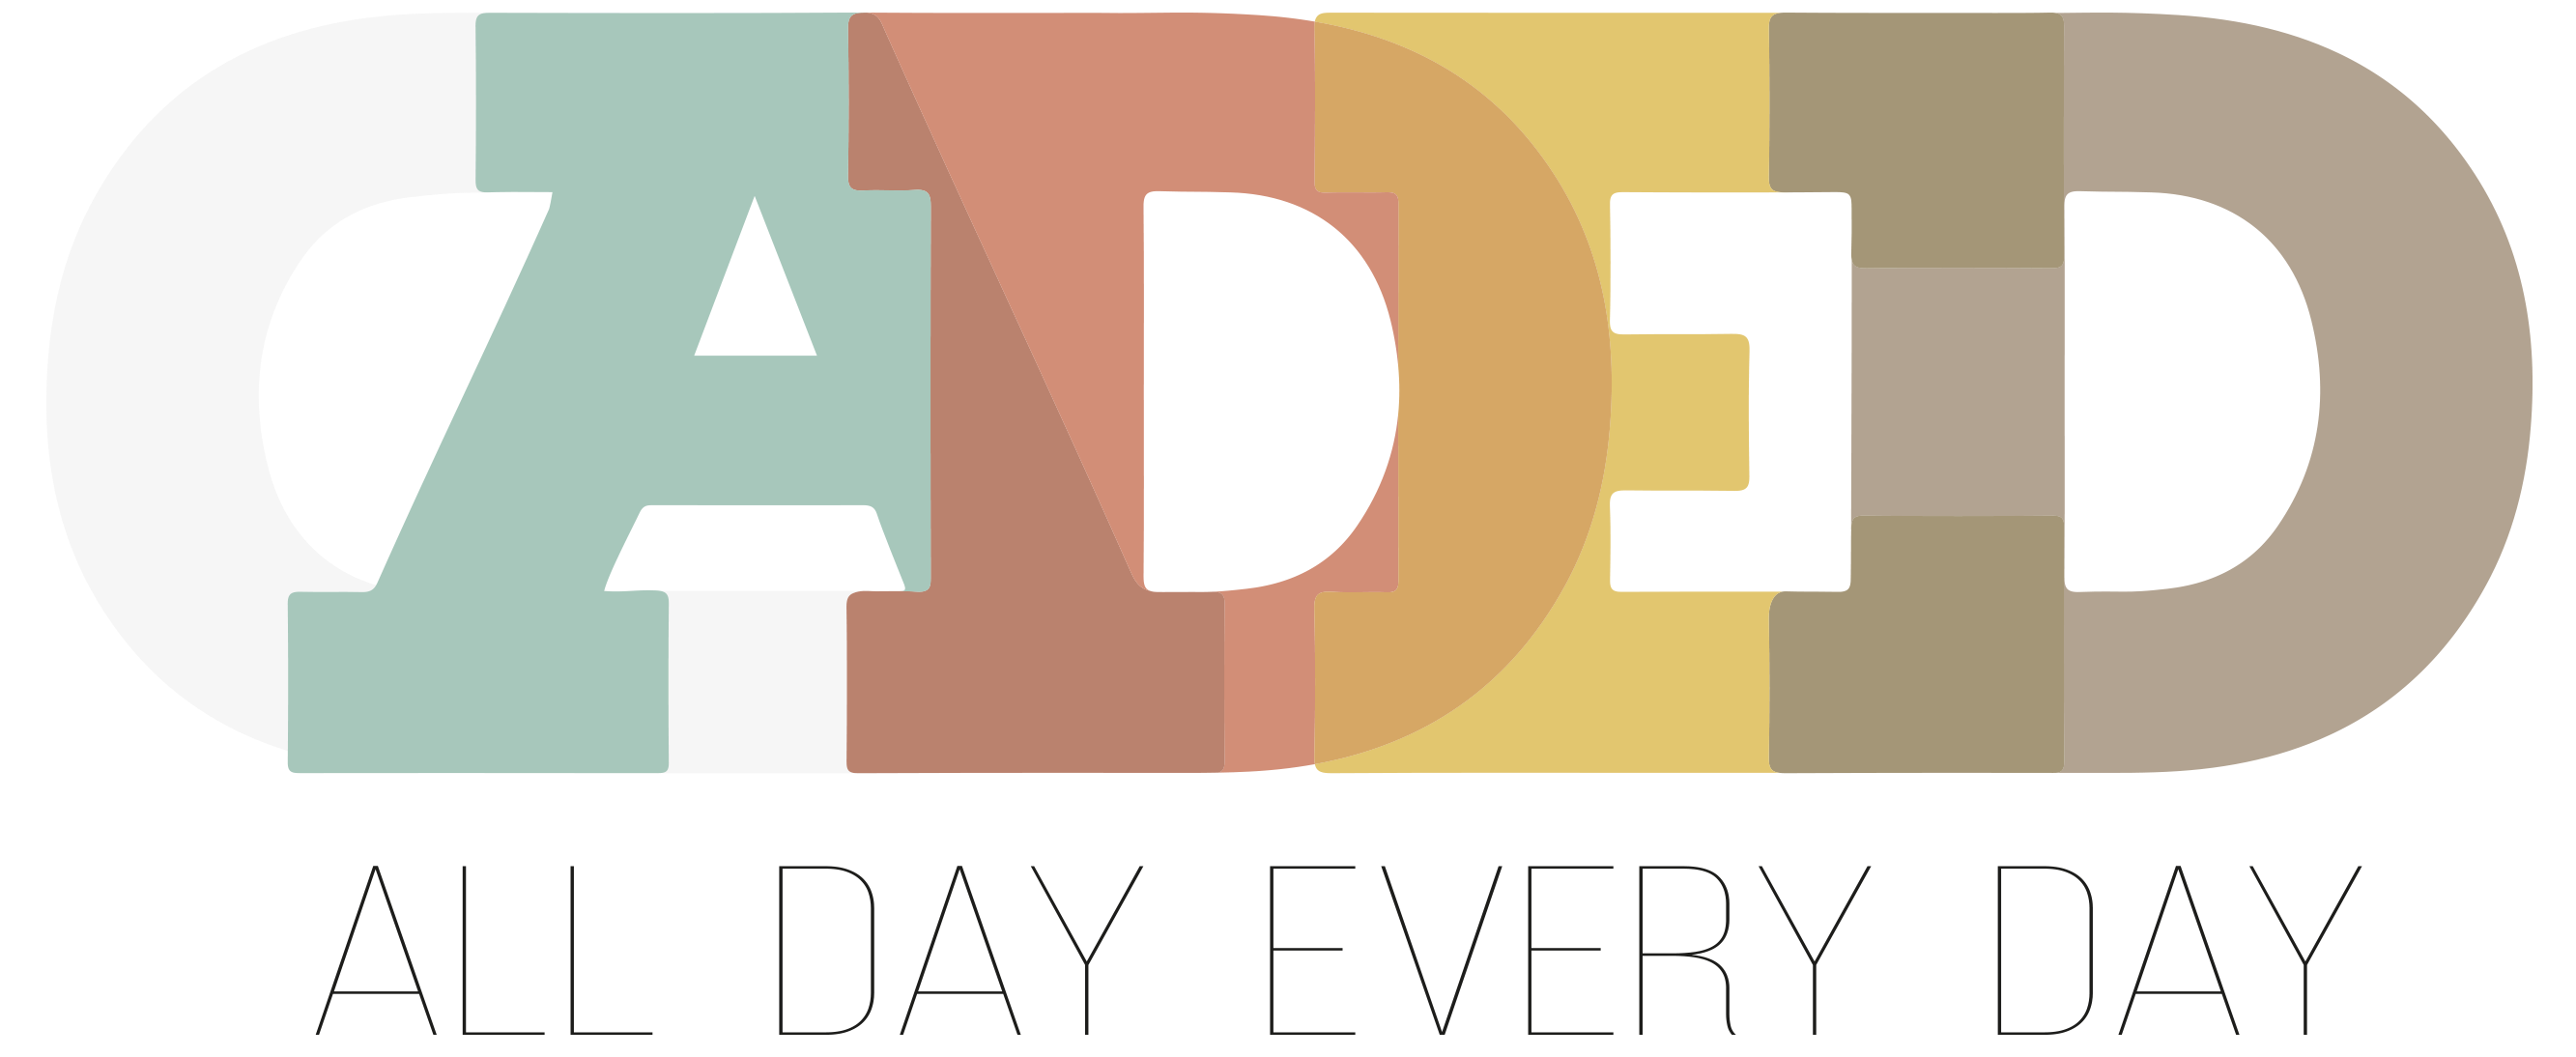 ADED- All Day every Day